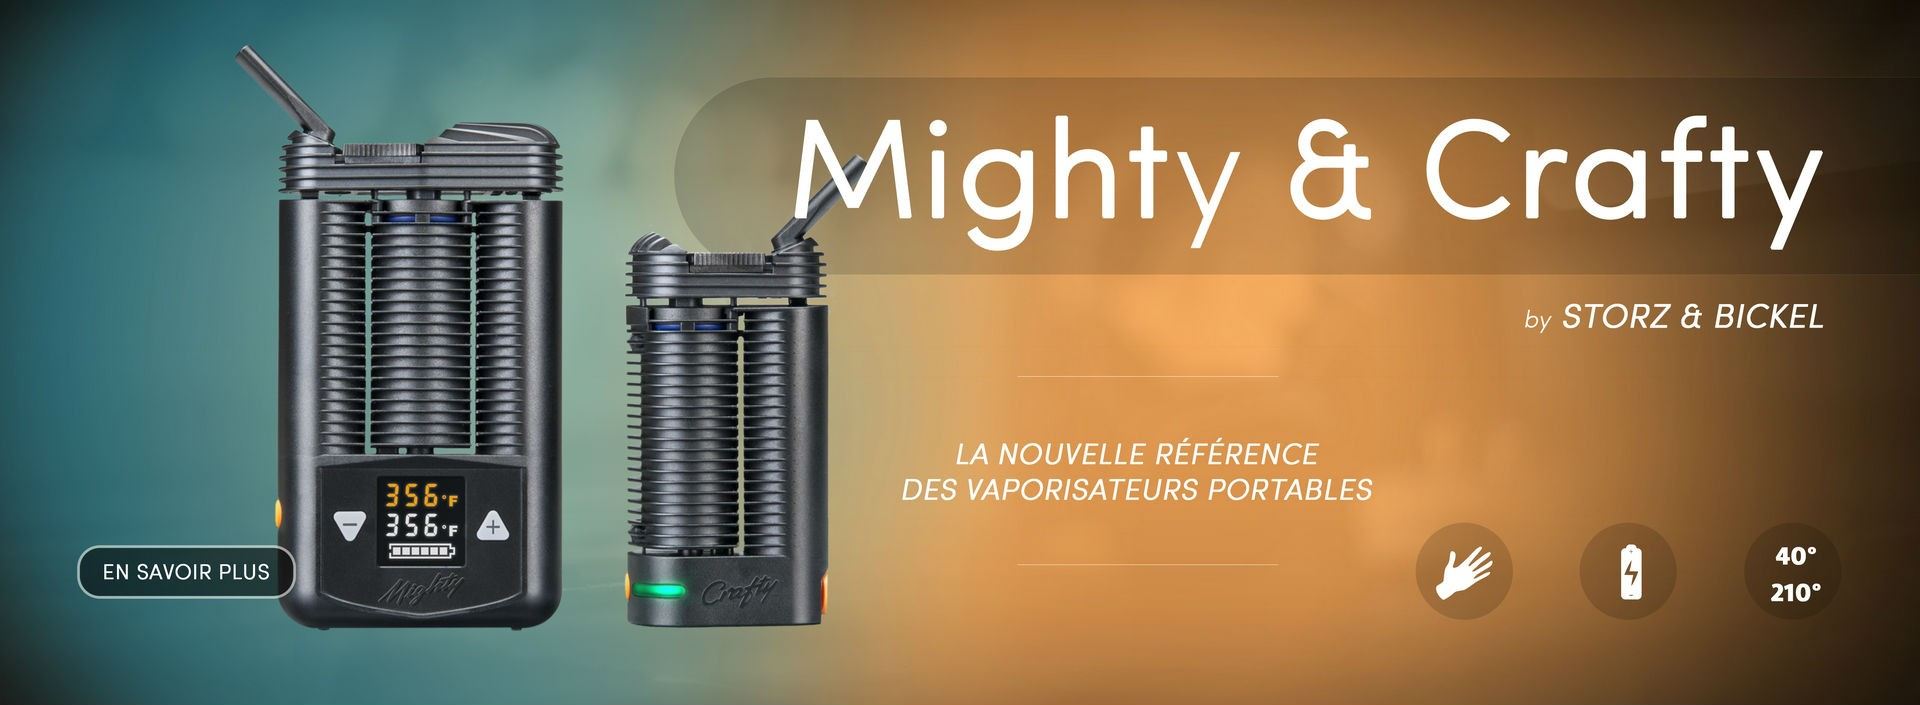 vaporisateur portable Mighty et Crafty